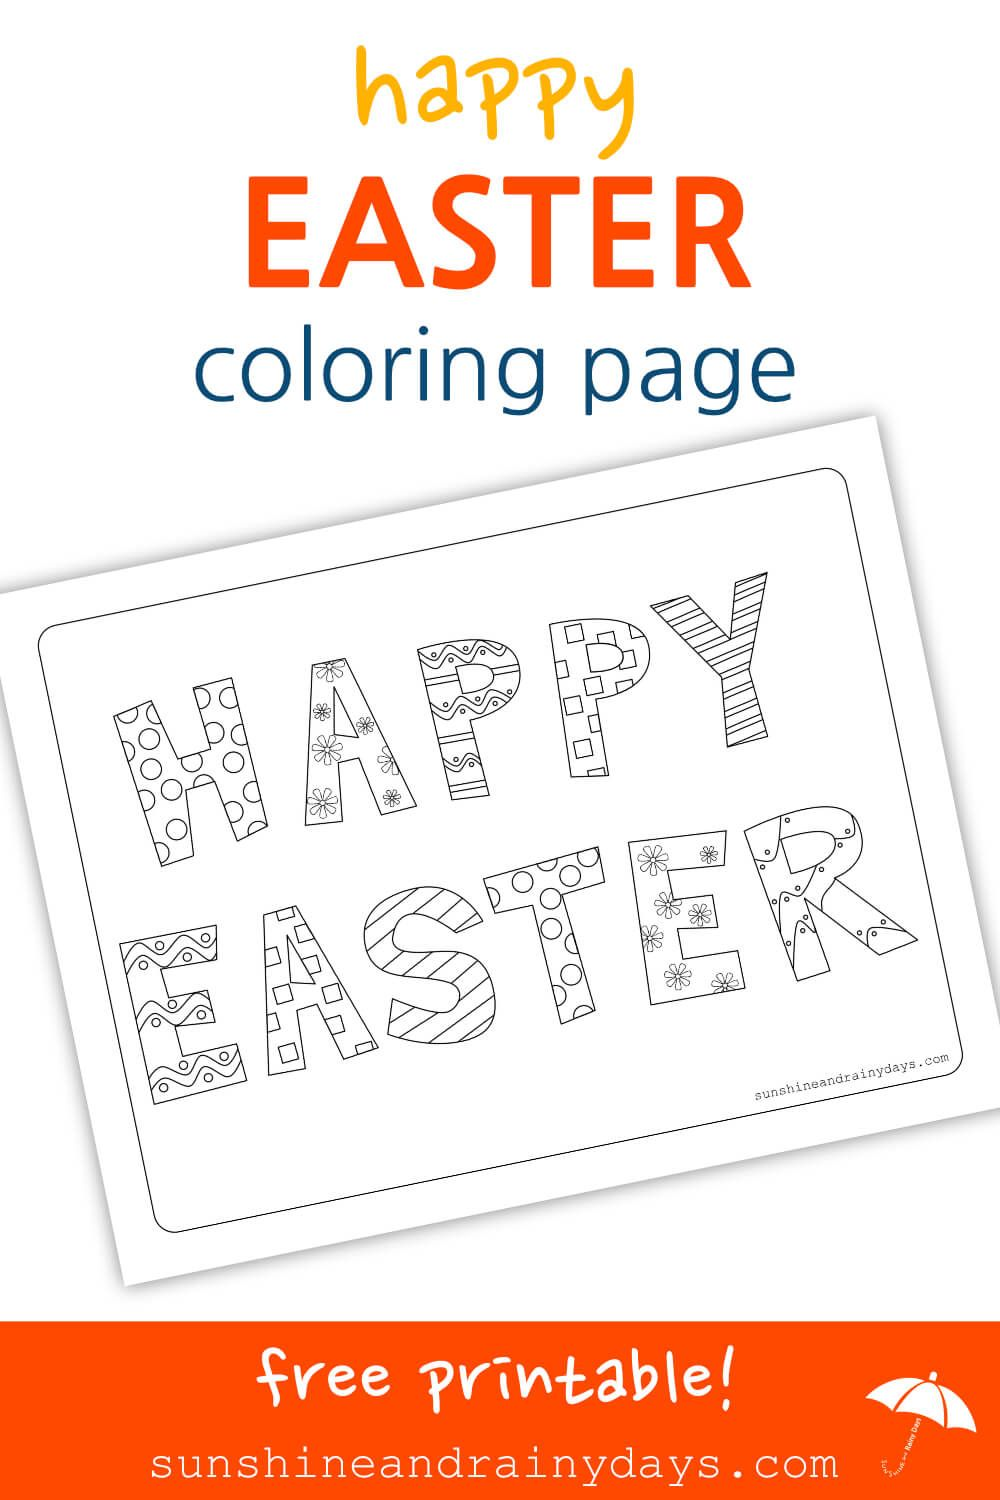 Happy Easter Coloring Page   Happy easter, Easter and Easter colouring